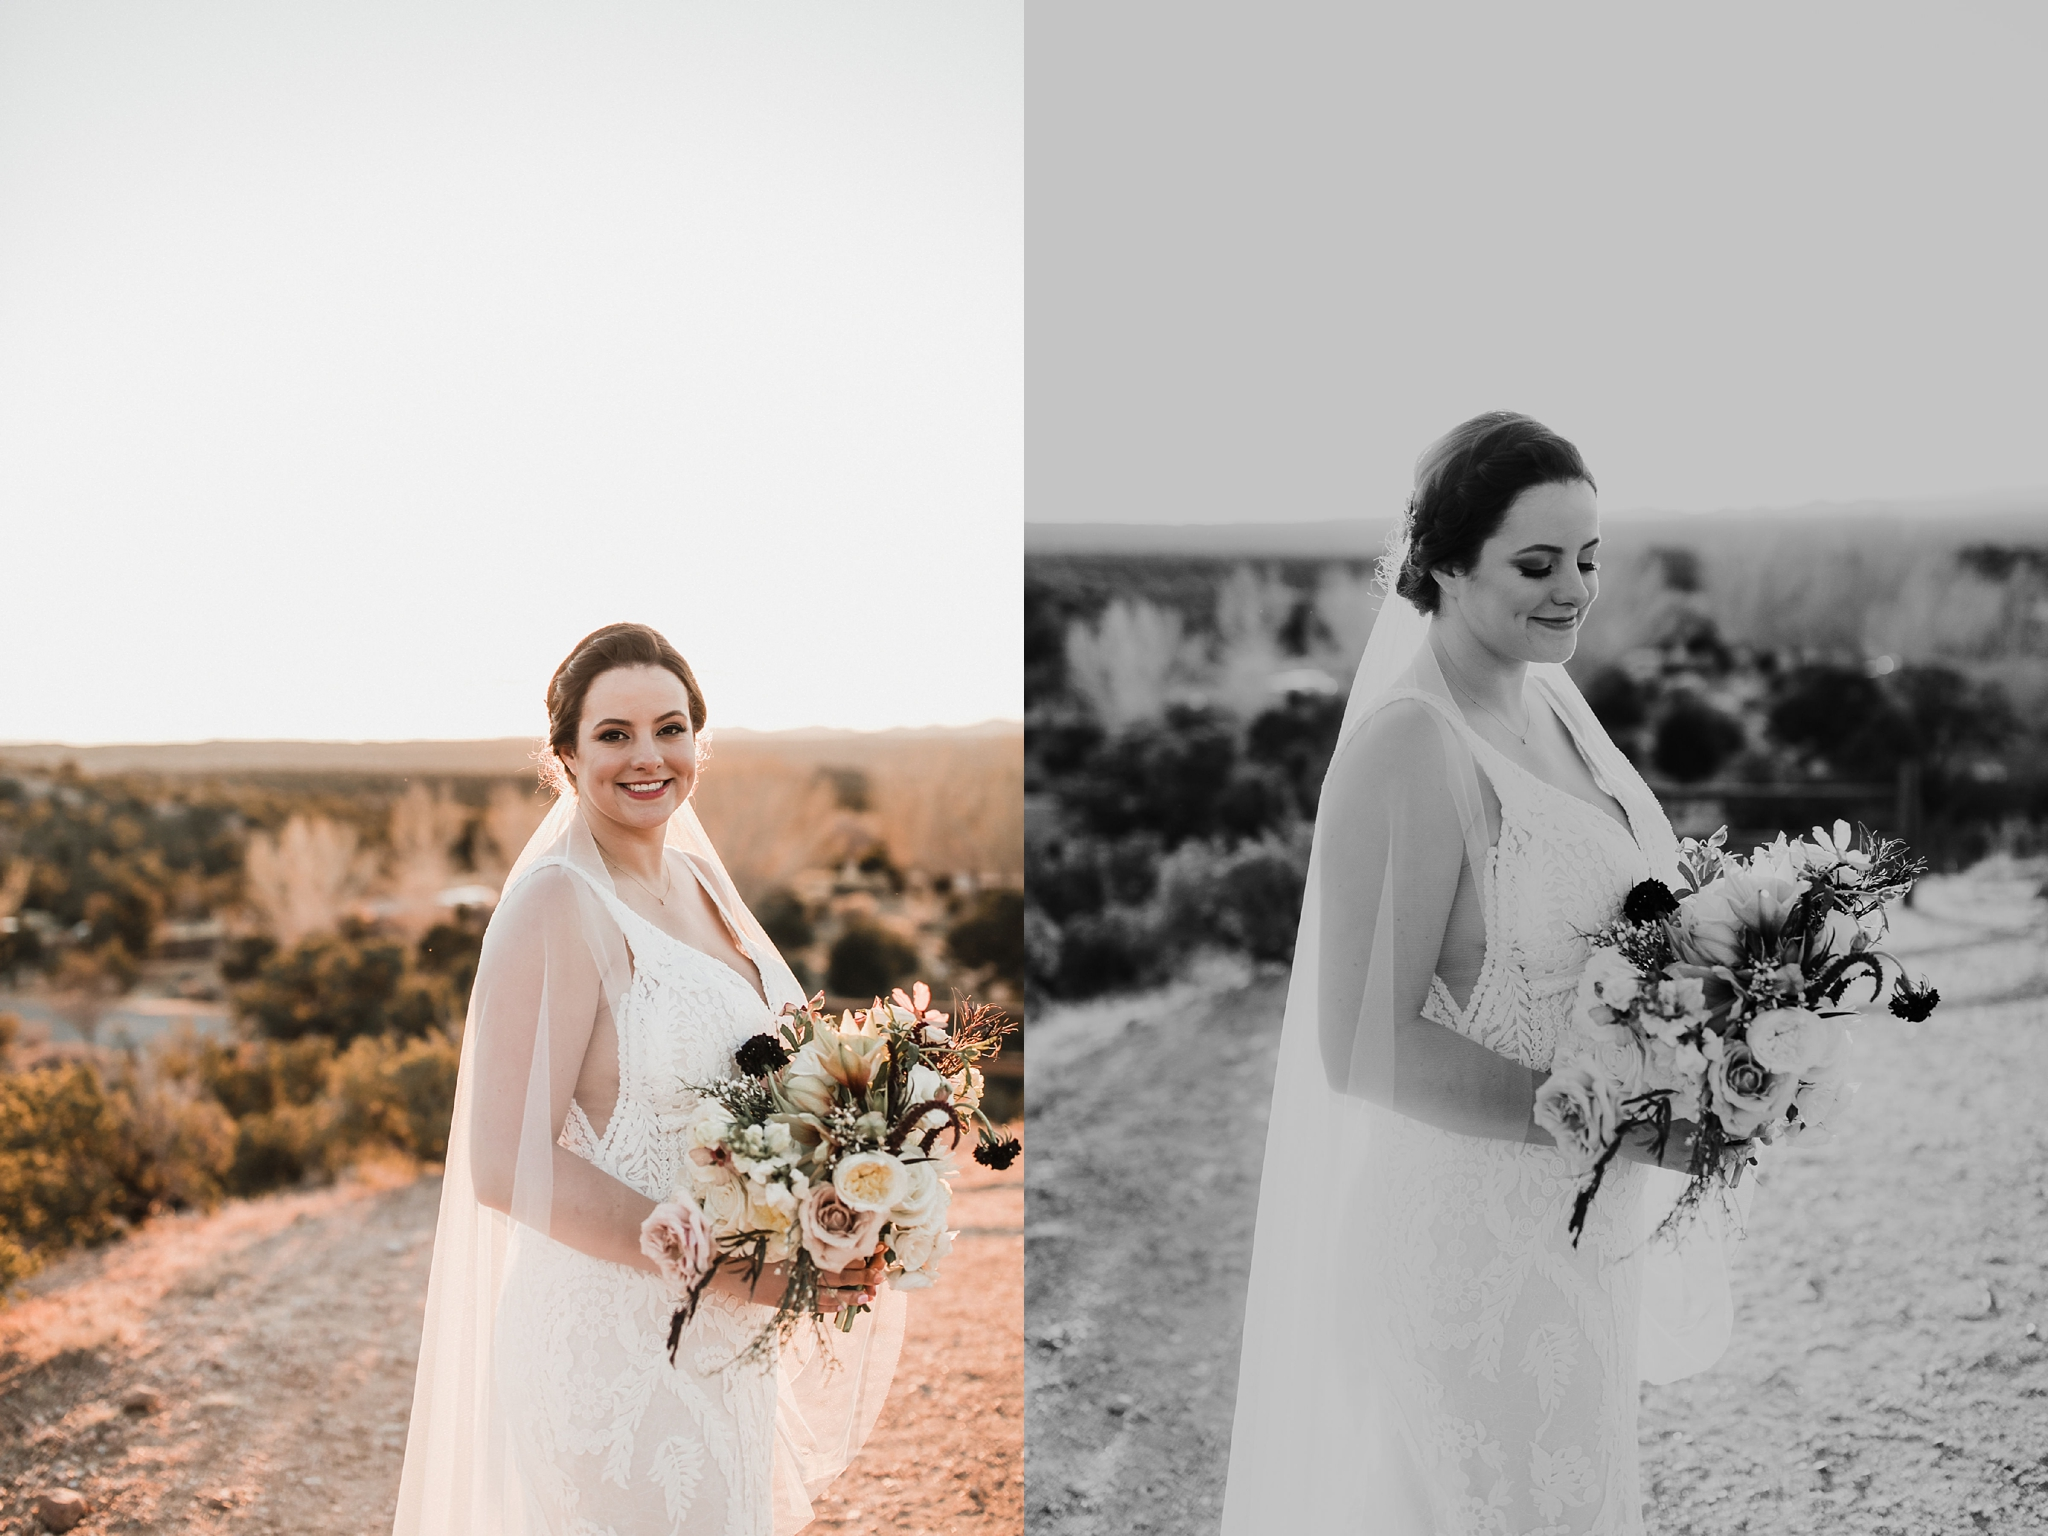 Alicia+lucia+photography+-+albuquerque+wedding+photographer+-+santa+fe+wedding+photography+-+new+mexico+wedding+photographer+-+new+mexico+wedding+-+santa+fe+wedding+-+four+seasons+wedding+-+winter+wedding_0096.jpg